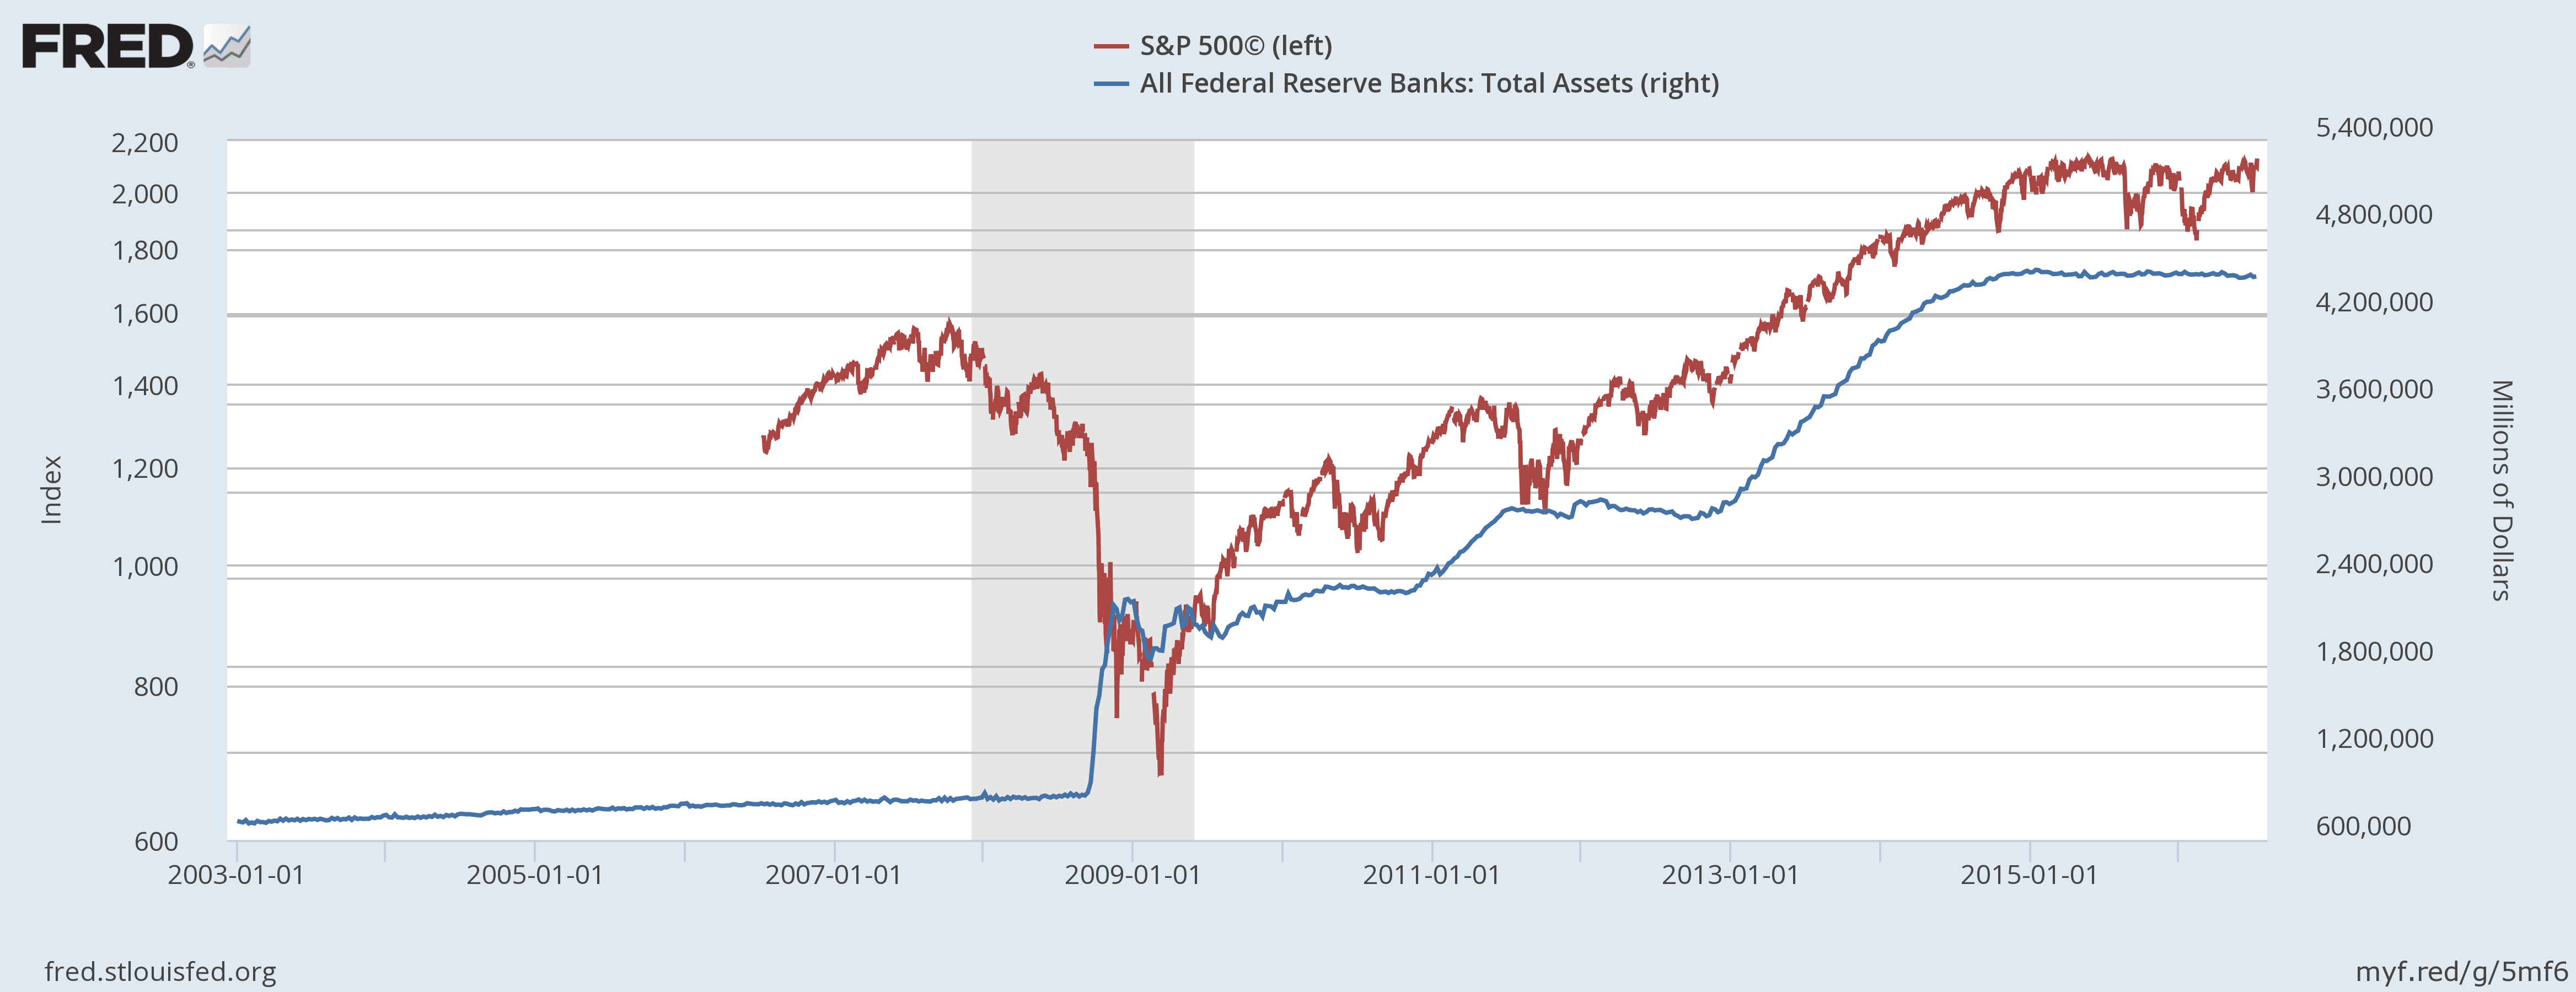 S&P 500 to Fed